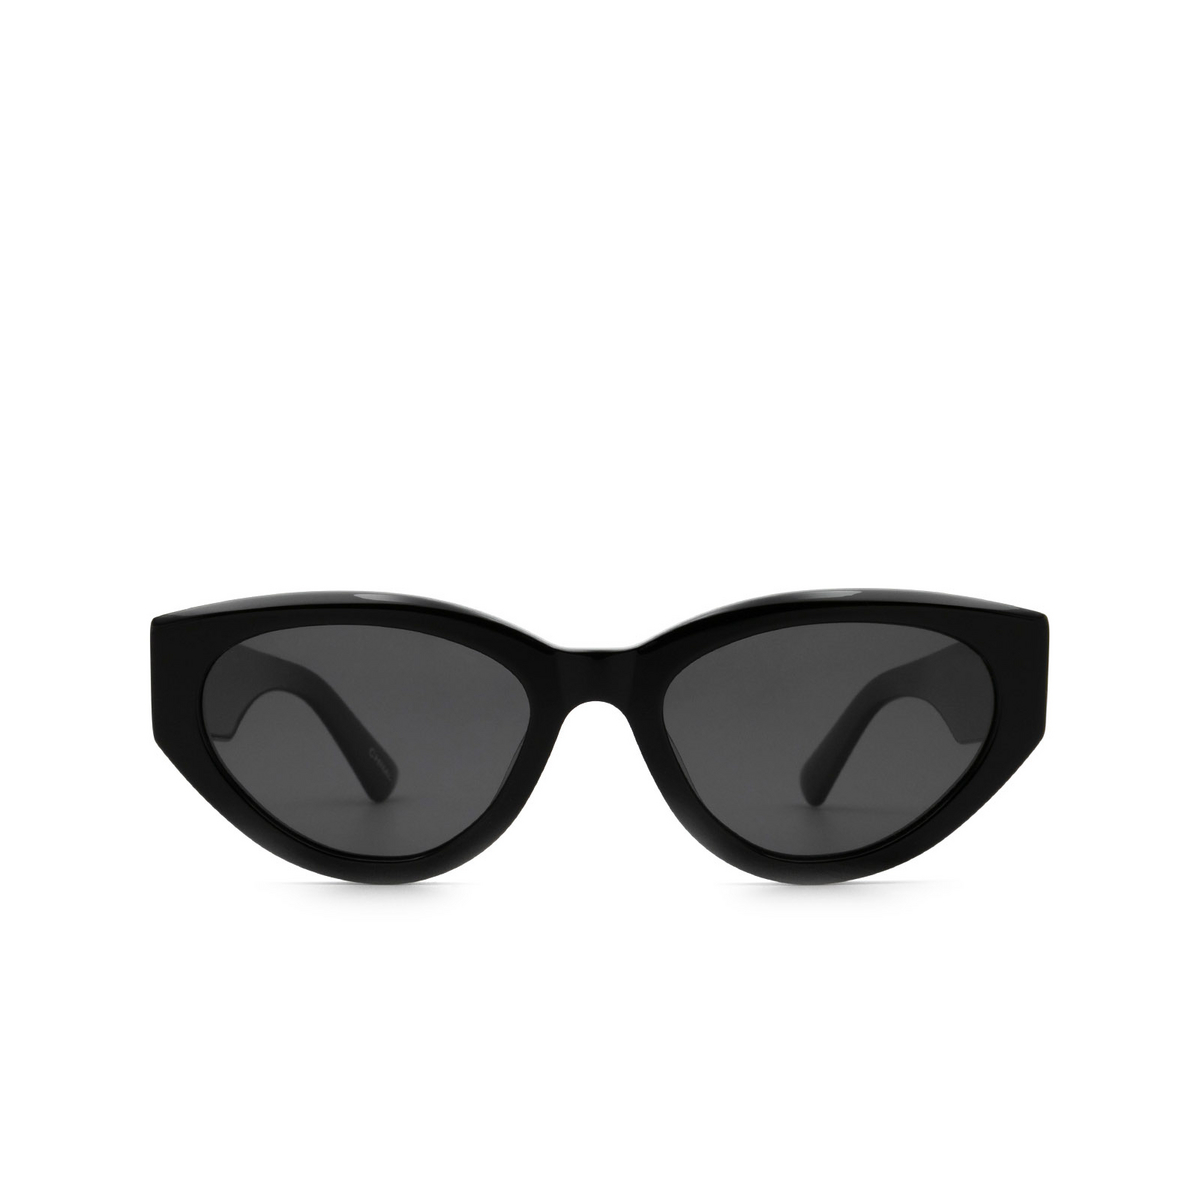 Chimi® Cat-eye Sunglasses: 06 color Black - front view.